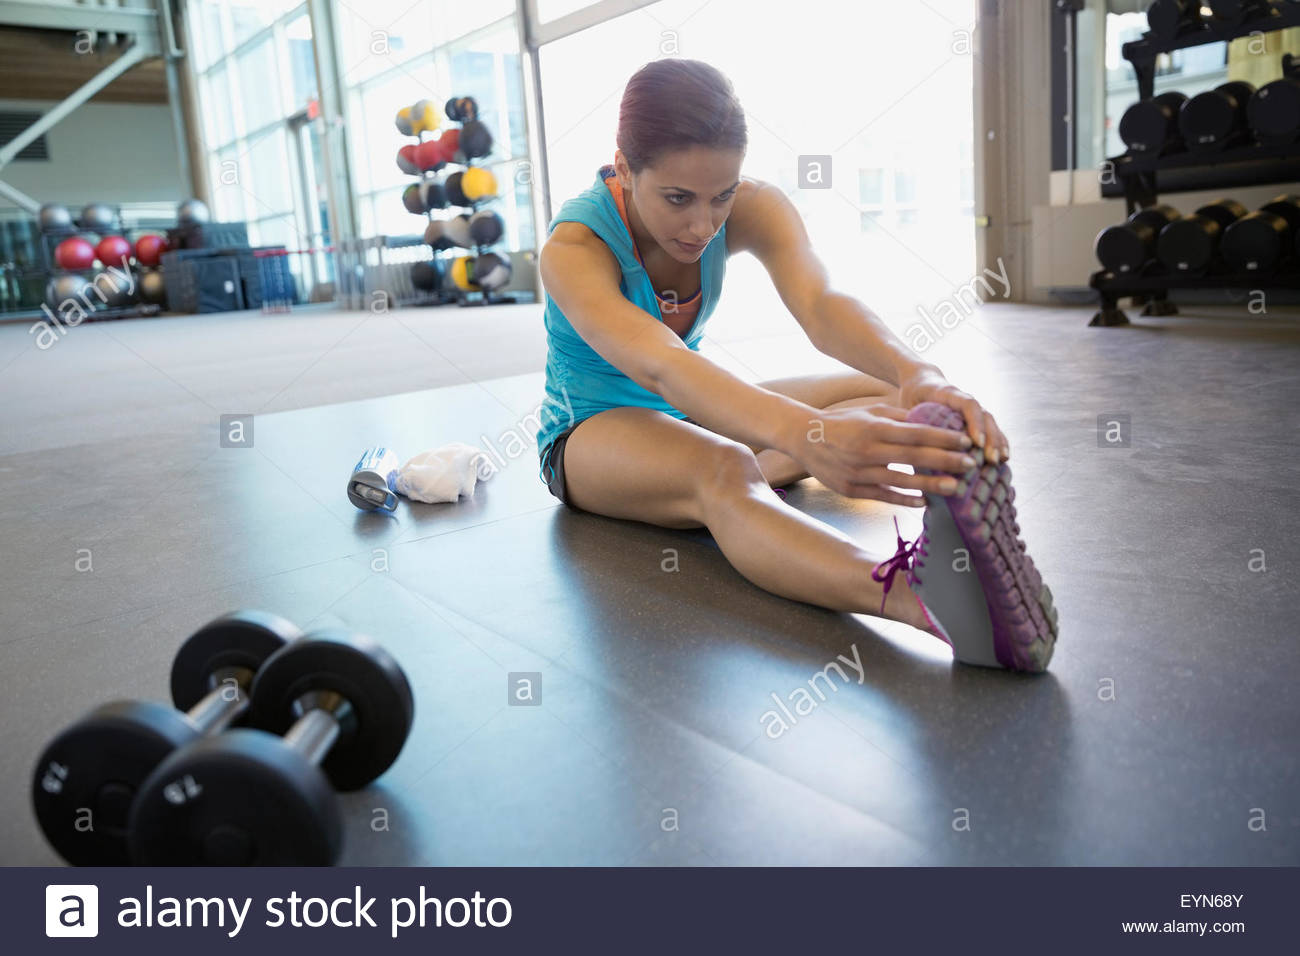 Woman stretching leg in gym Photo Stock